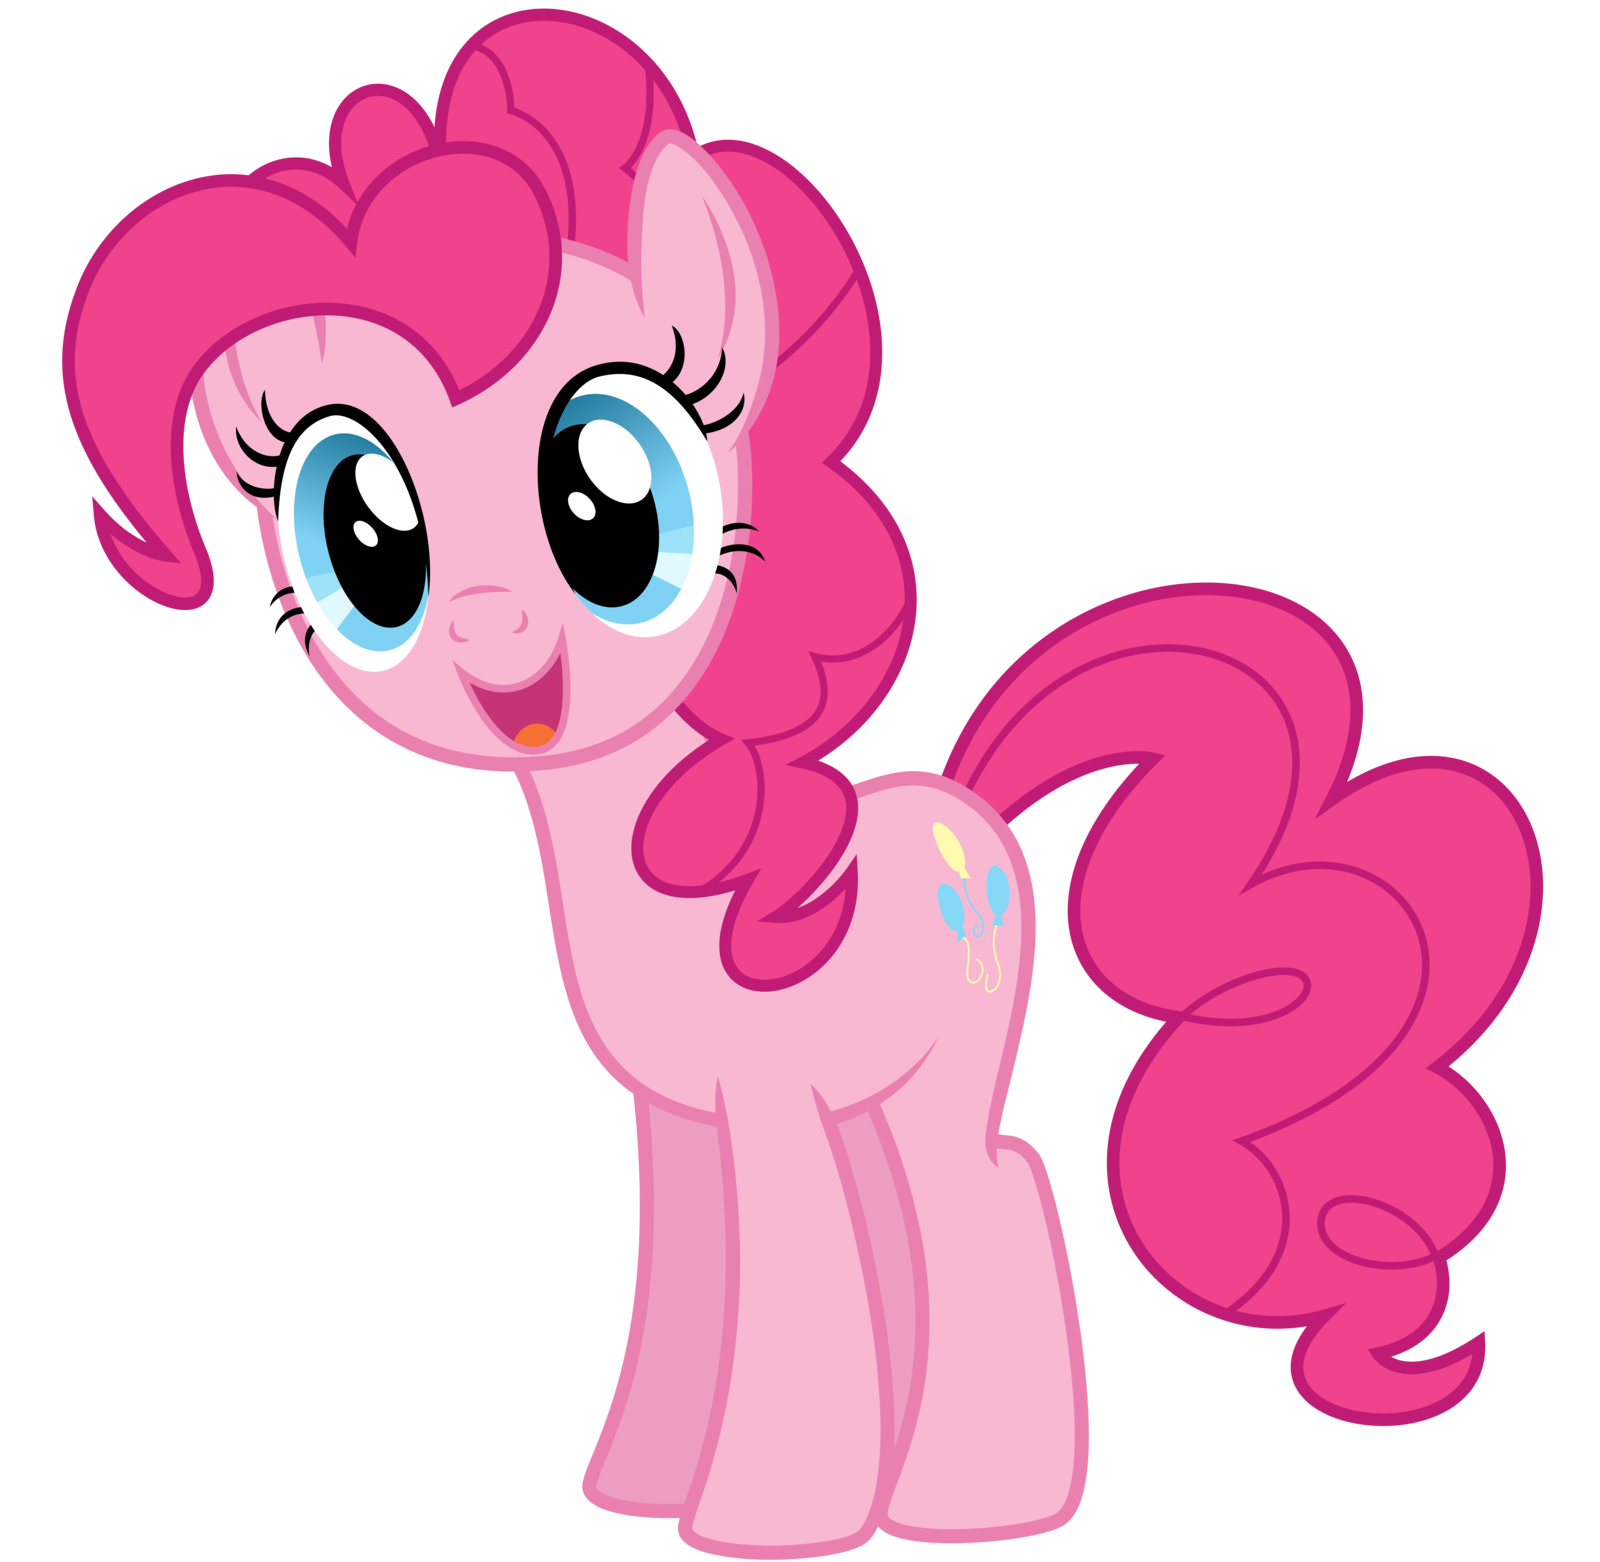 Pinkie pie png. Image fanmade happy by